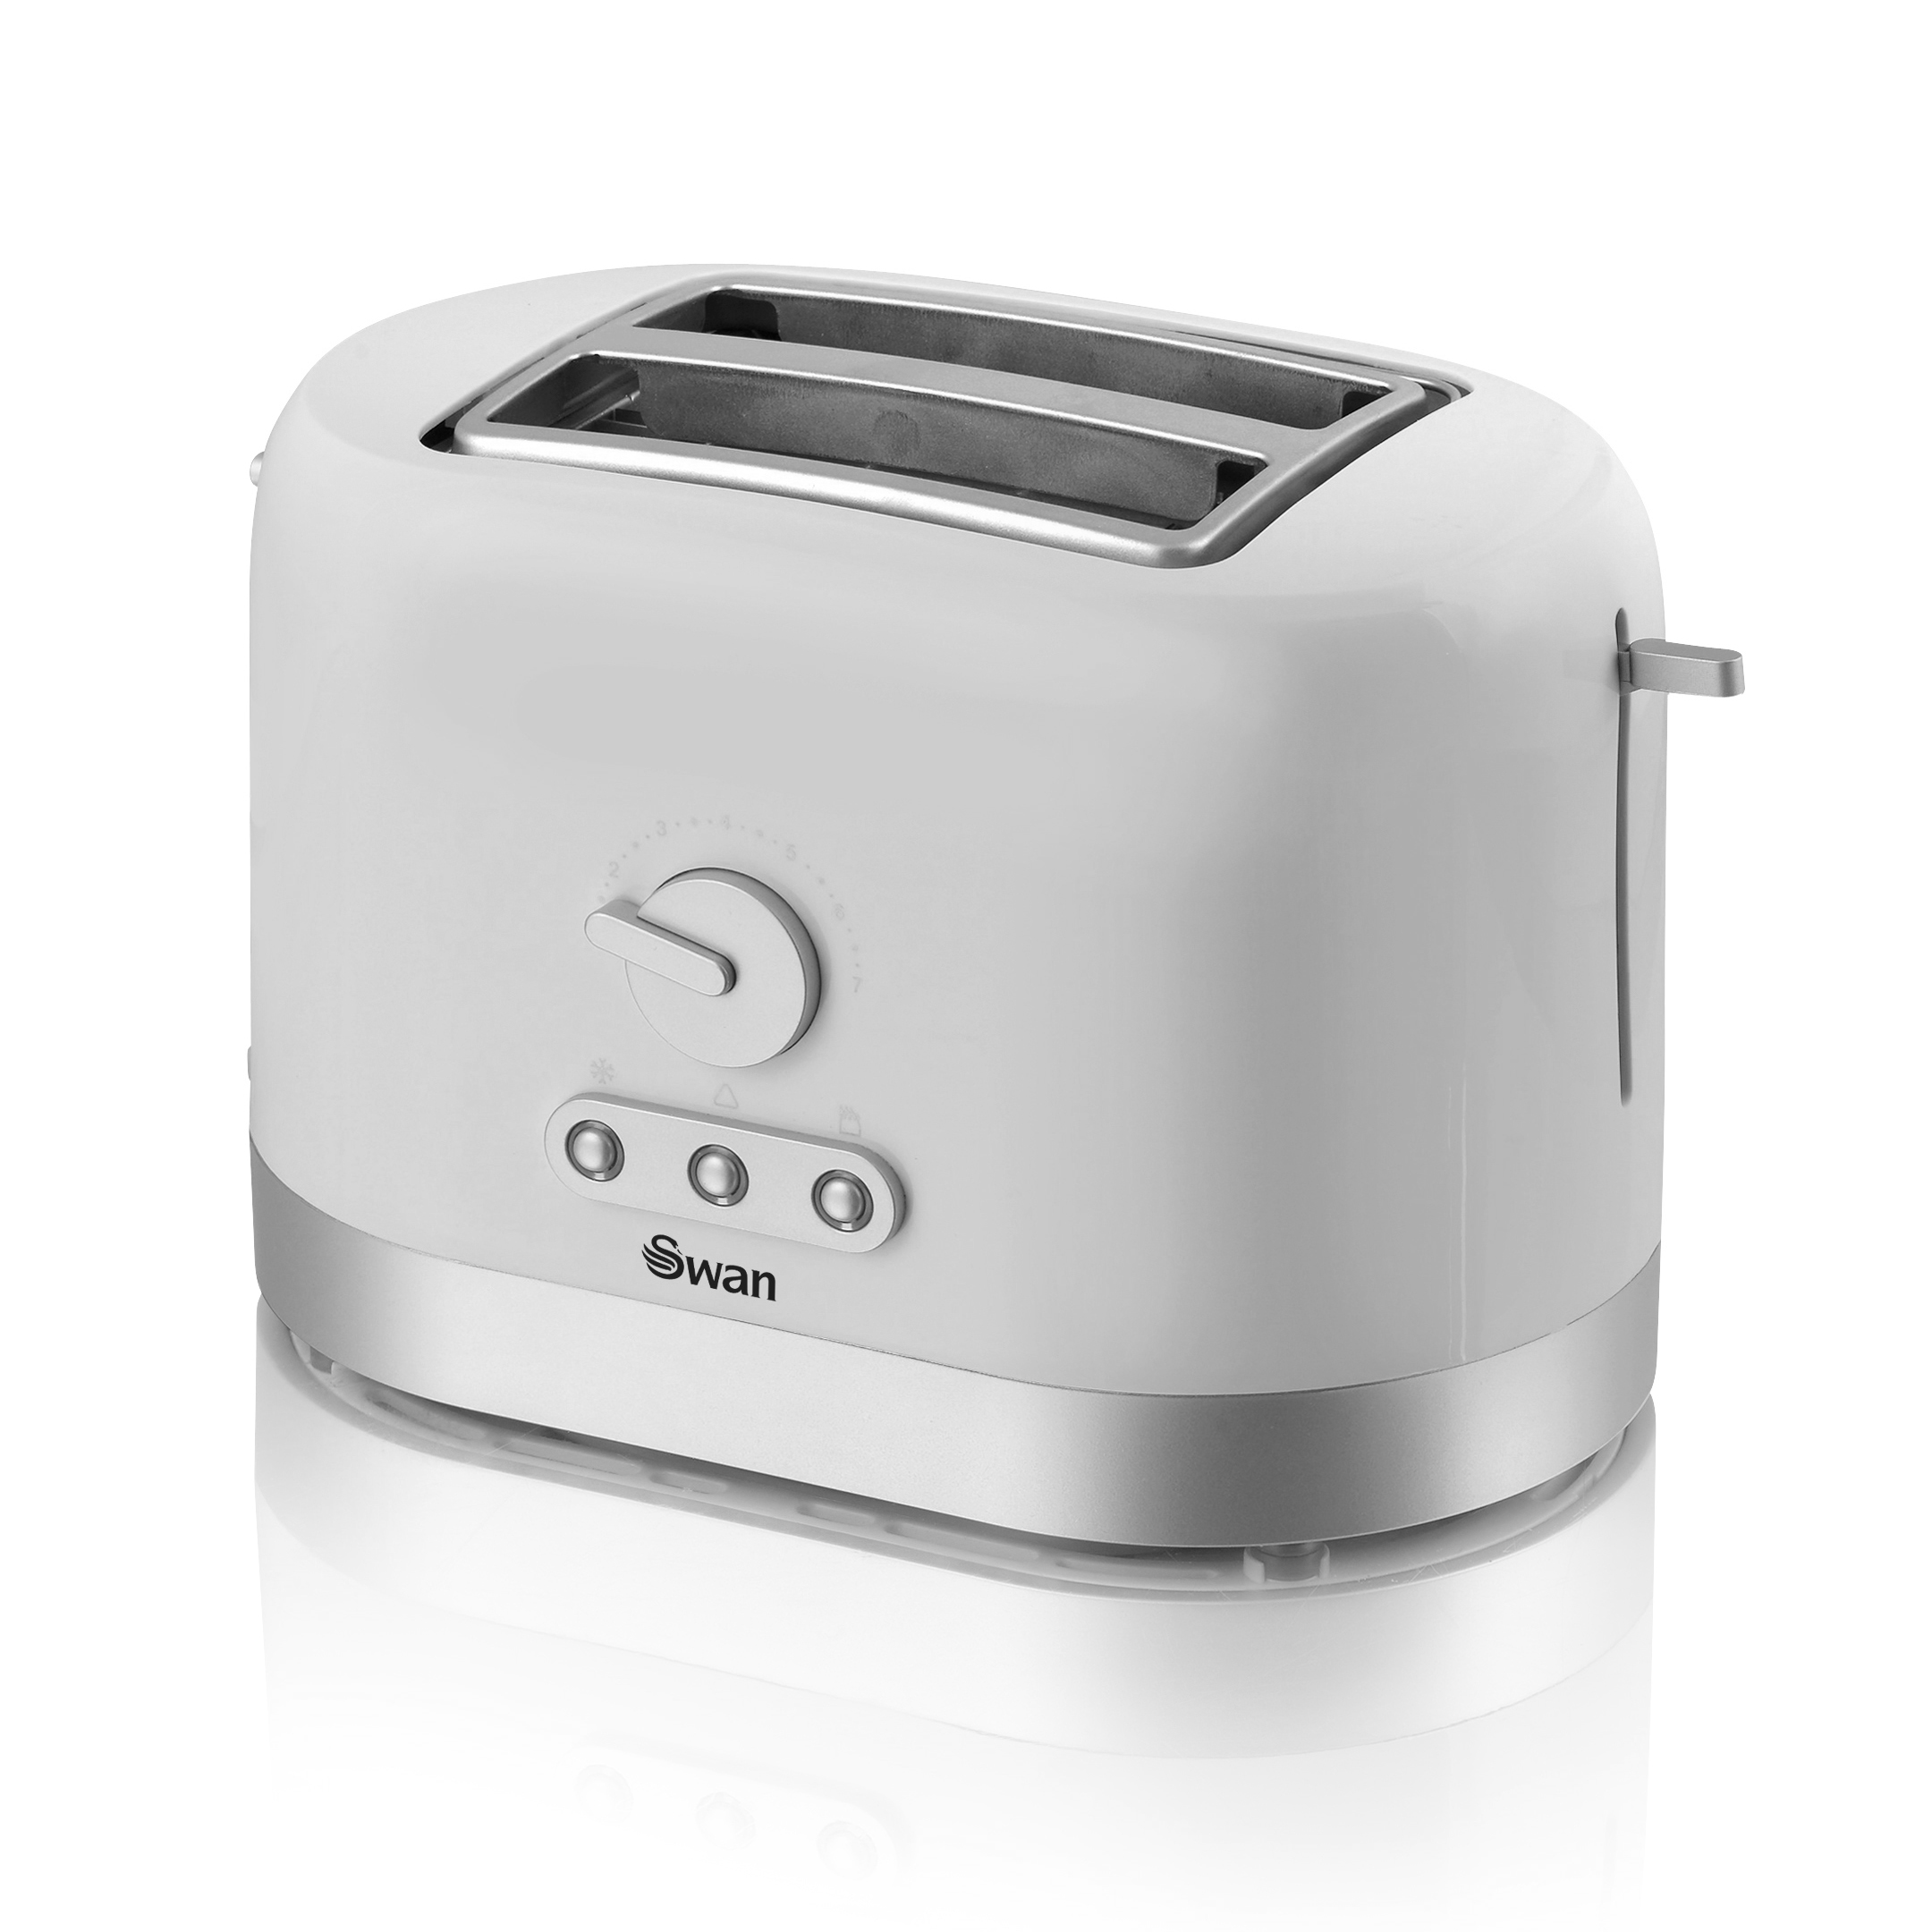 Swan White 2 Slice Toaster - White No Colour